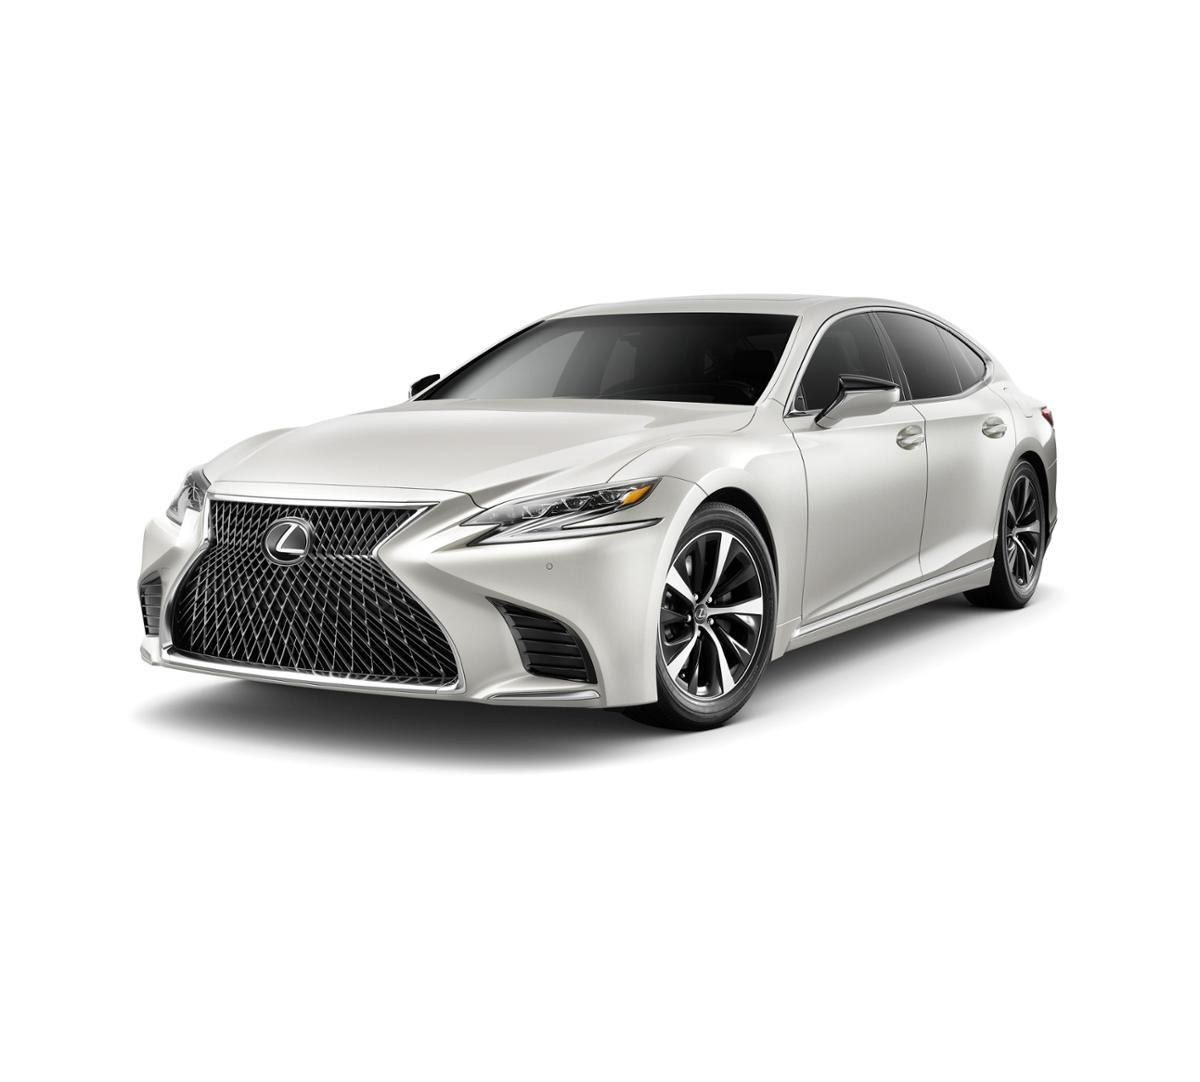 2019 Lexus LS 500 Vehicle Photo in Las Vegas, NV 89146